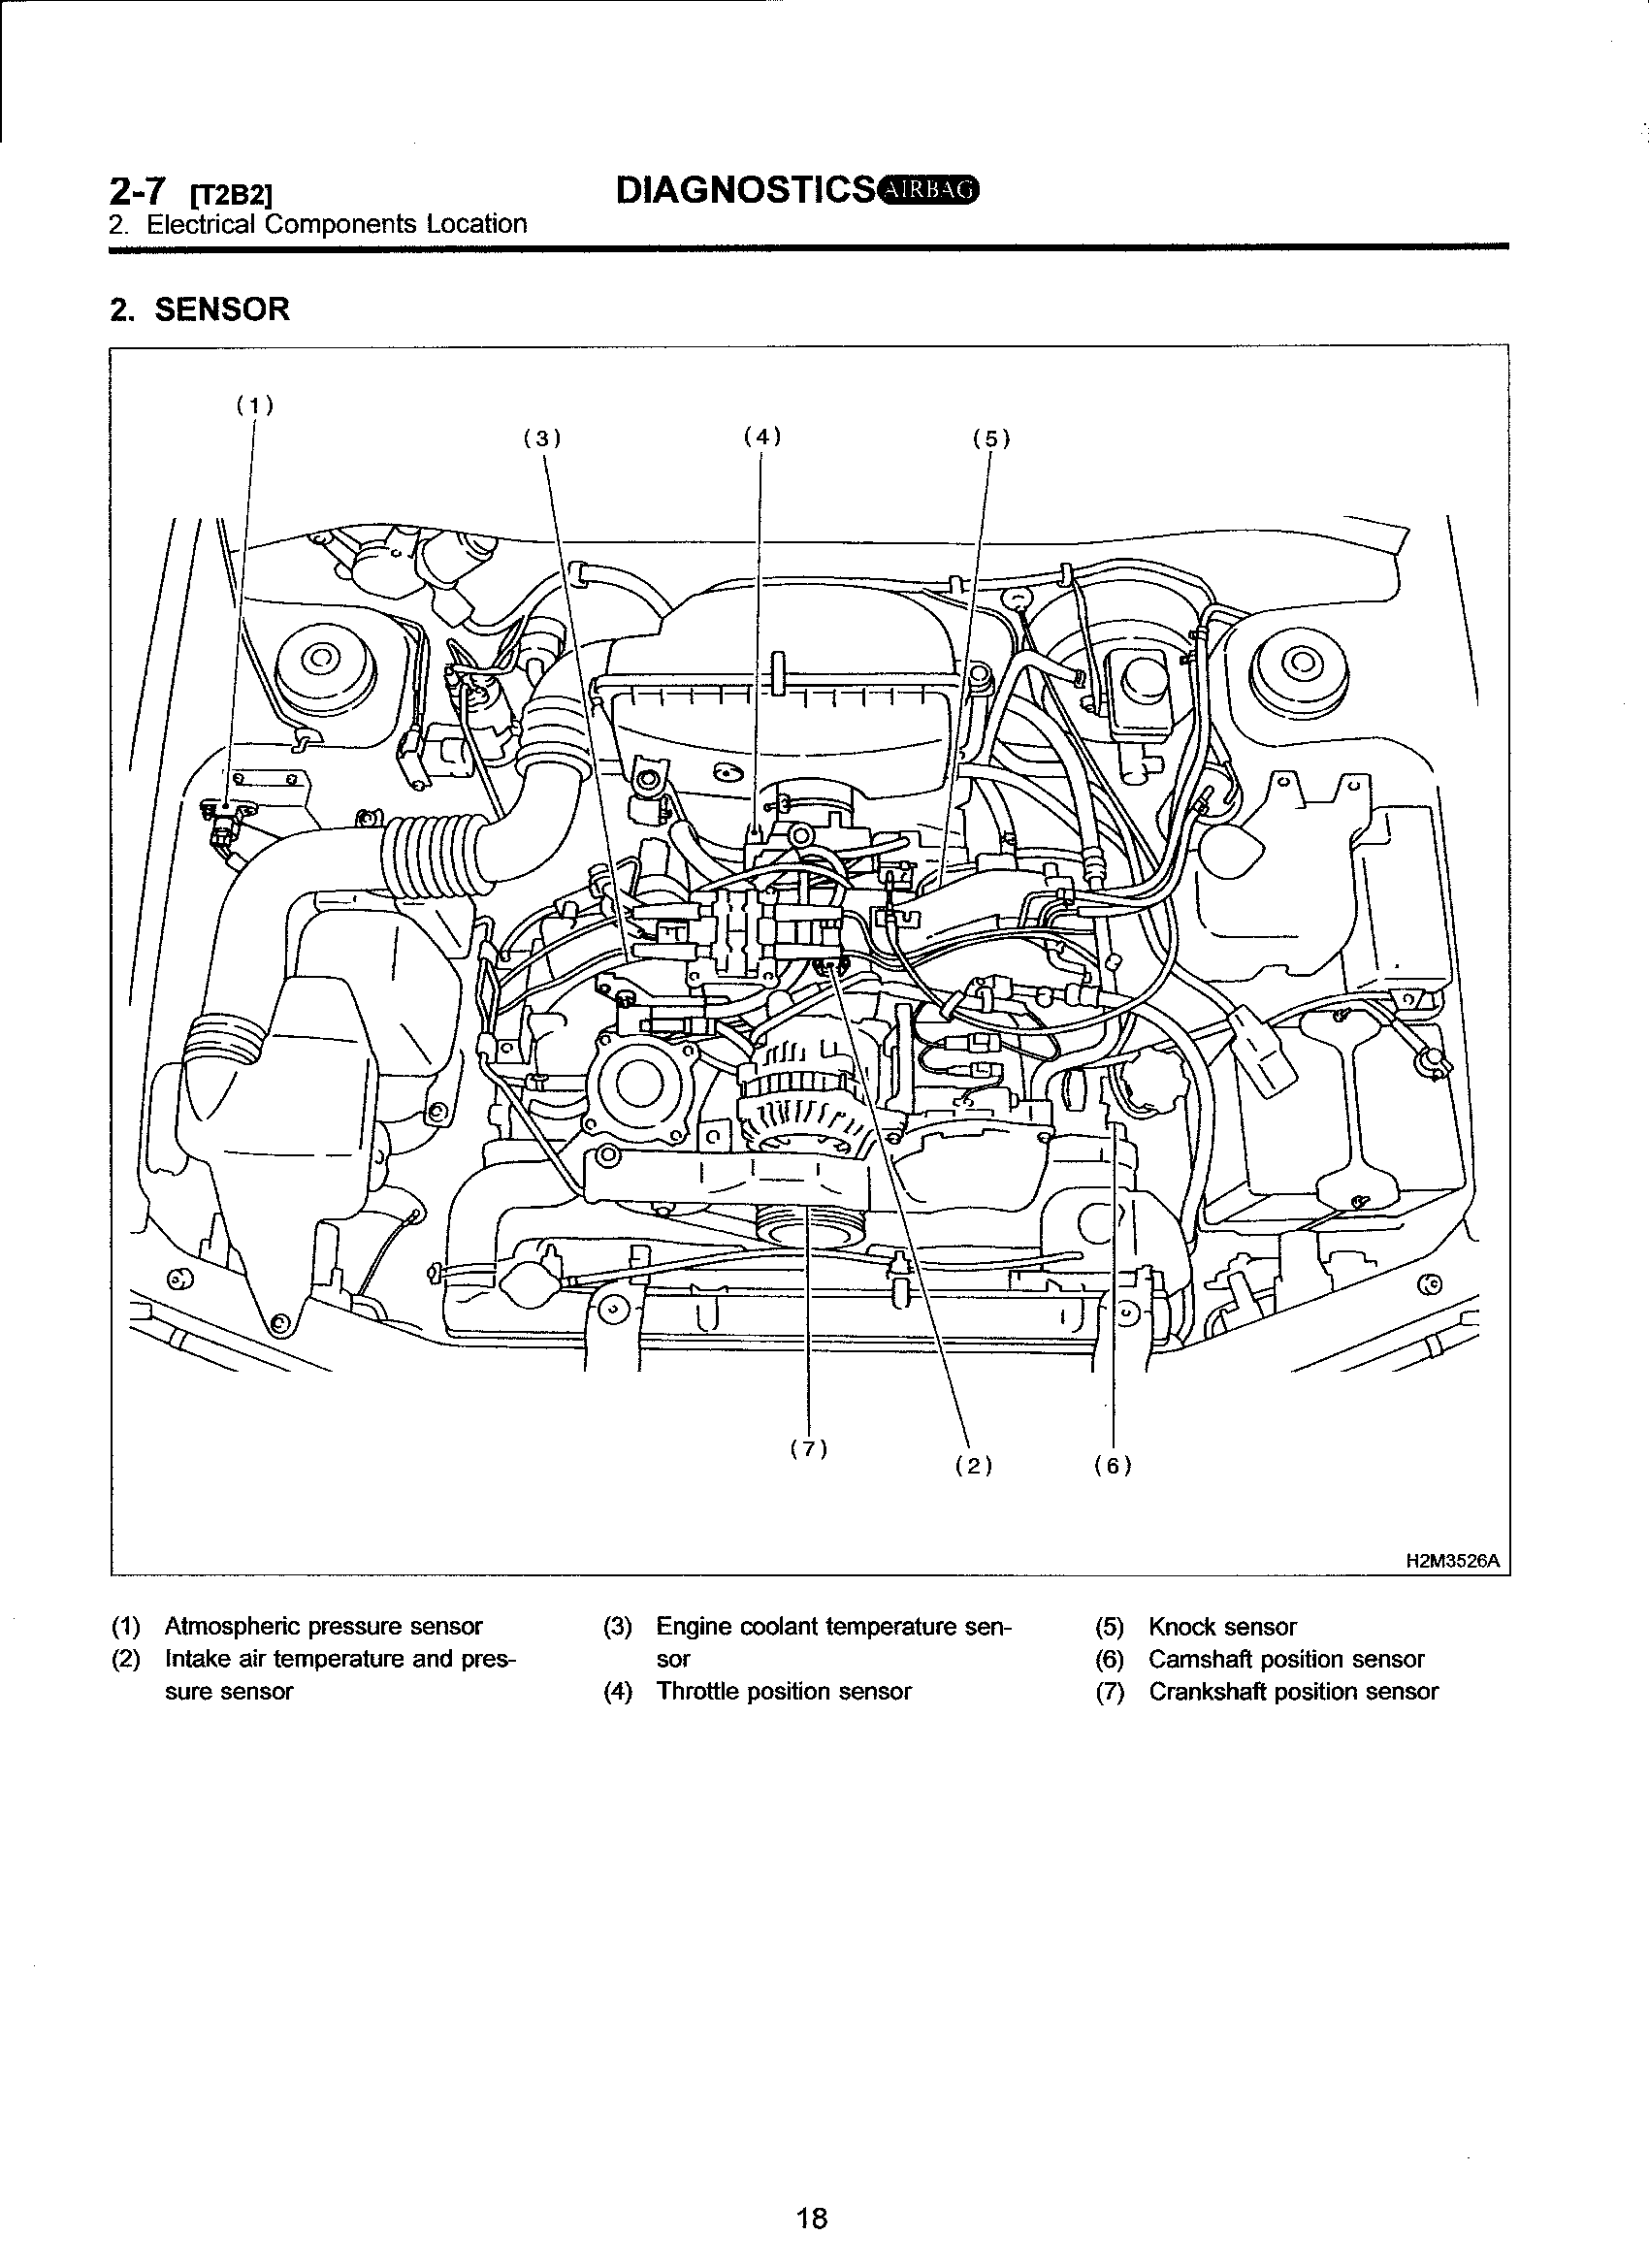 Subaru Outback Parts Diagram 2008 Impreza Engine Just Another Wiring Blog Forester Xt Schema Diagrams Rh 39 Justanotherbeautyblog De 2 Timing